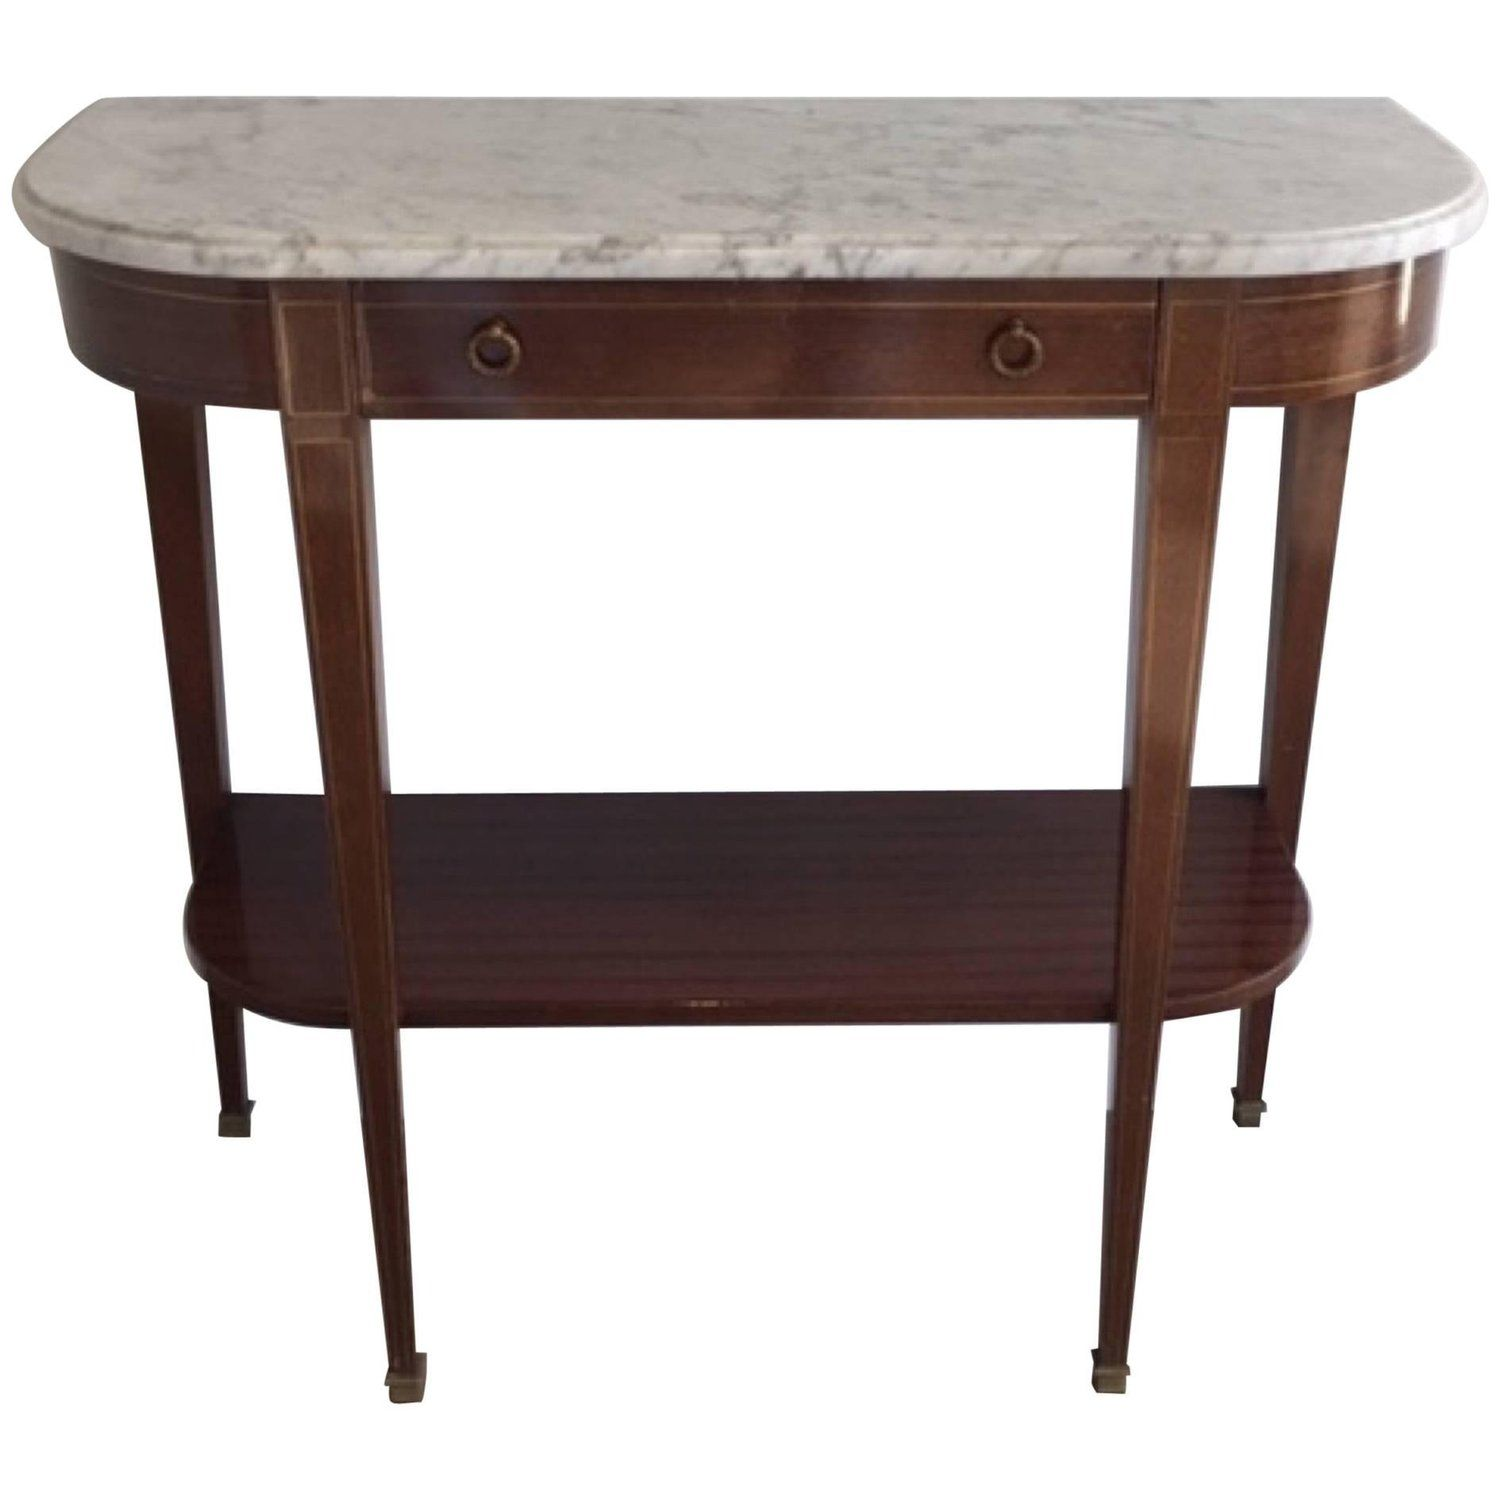 Mahogany Brass Neoclassical Console Table With White Marble Top